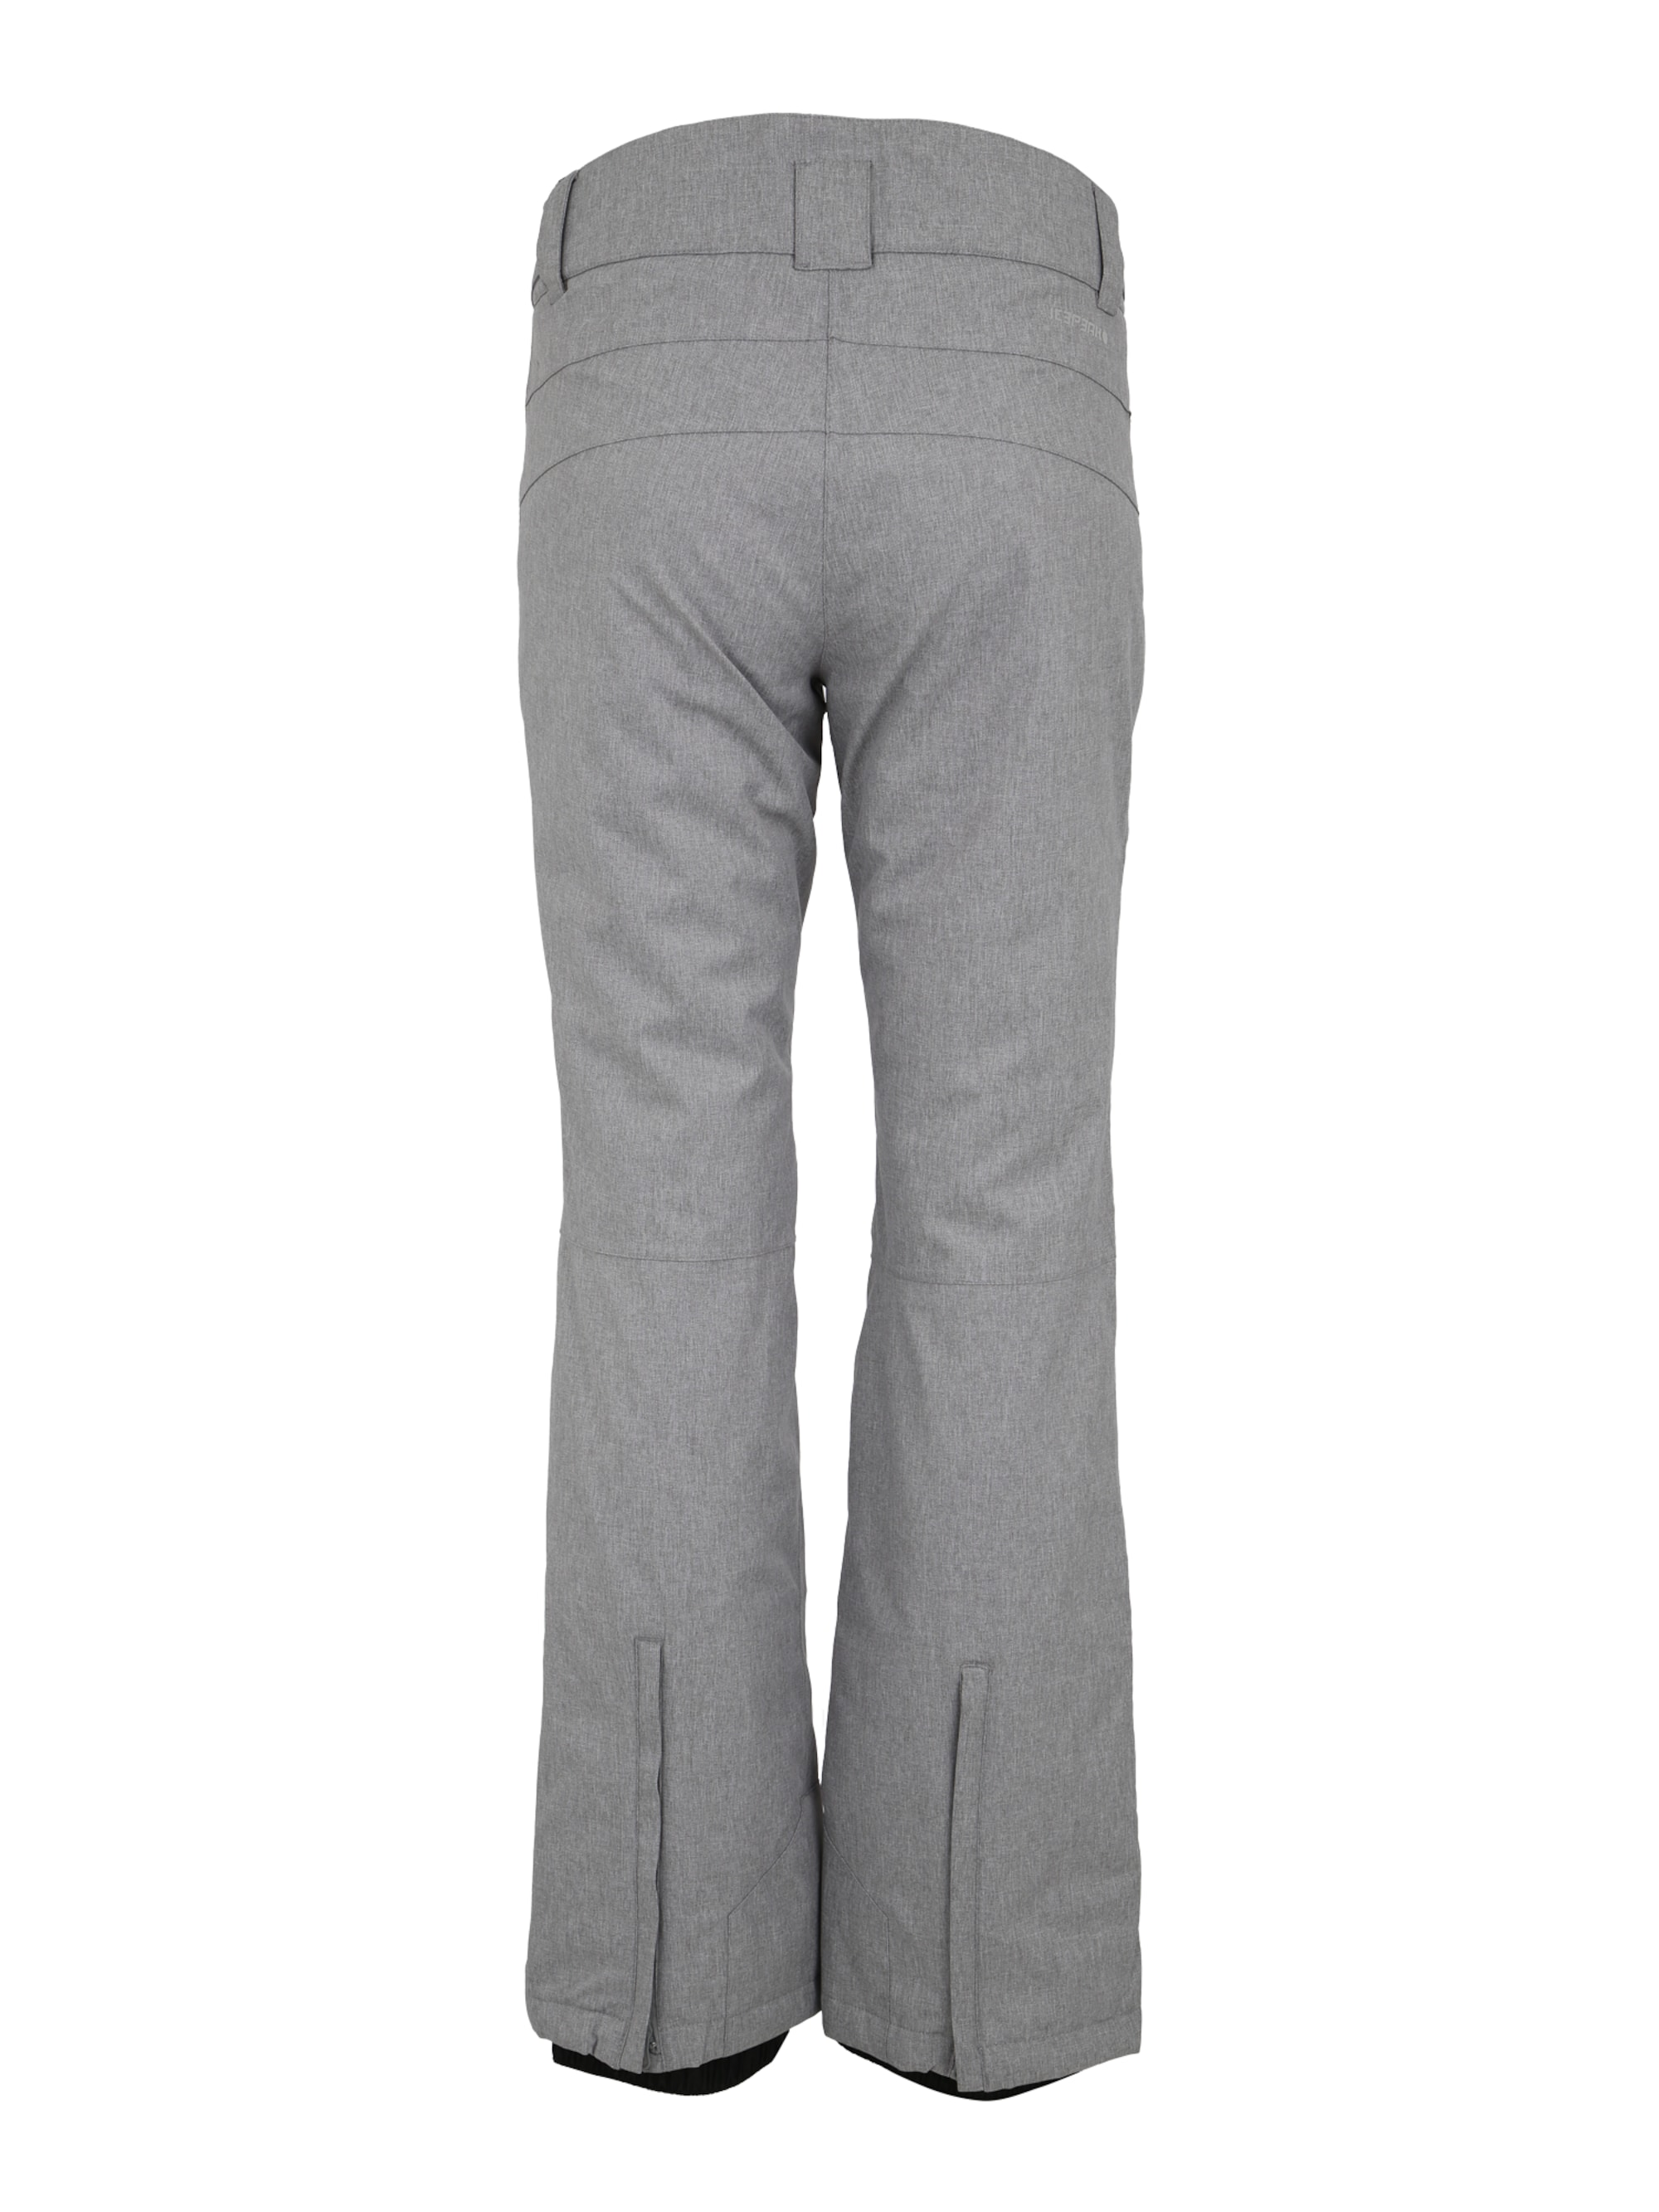 Outdoorbroek 'KARLA'